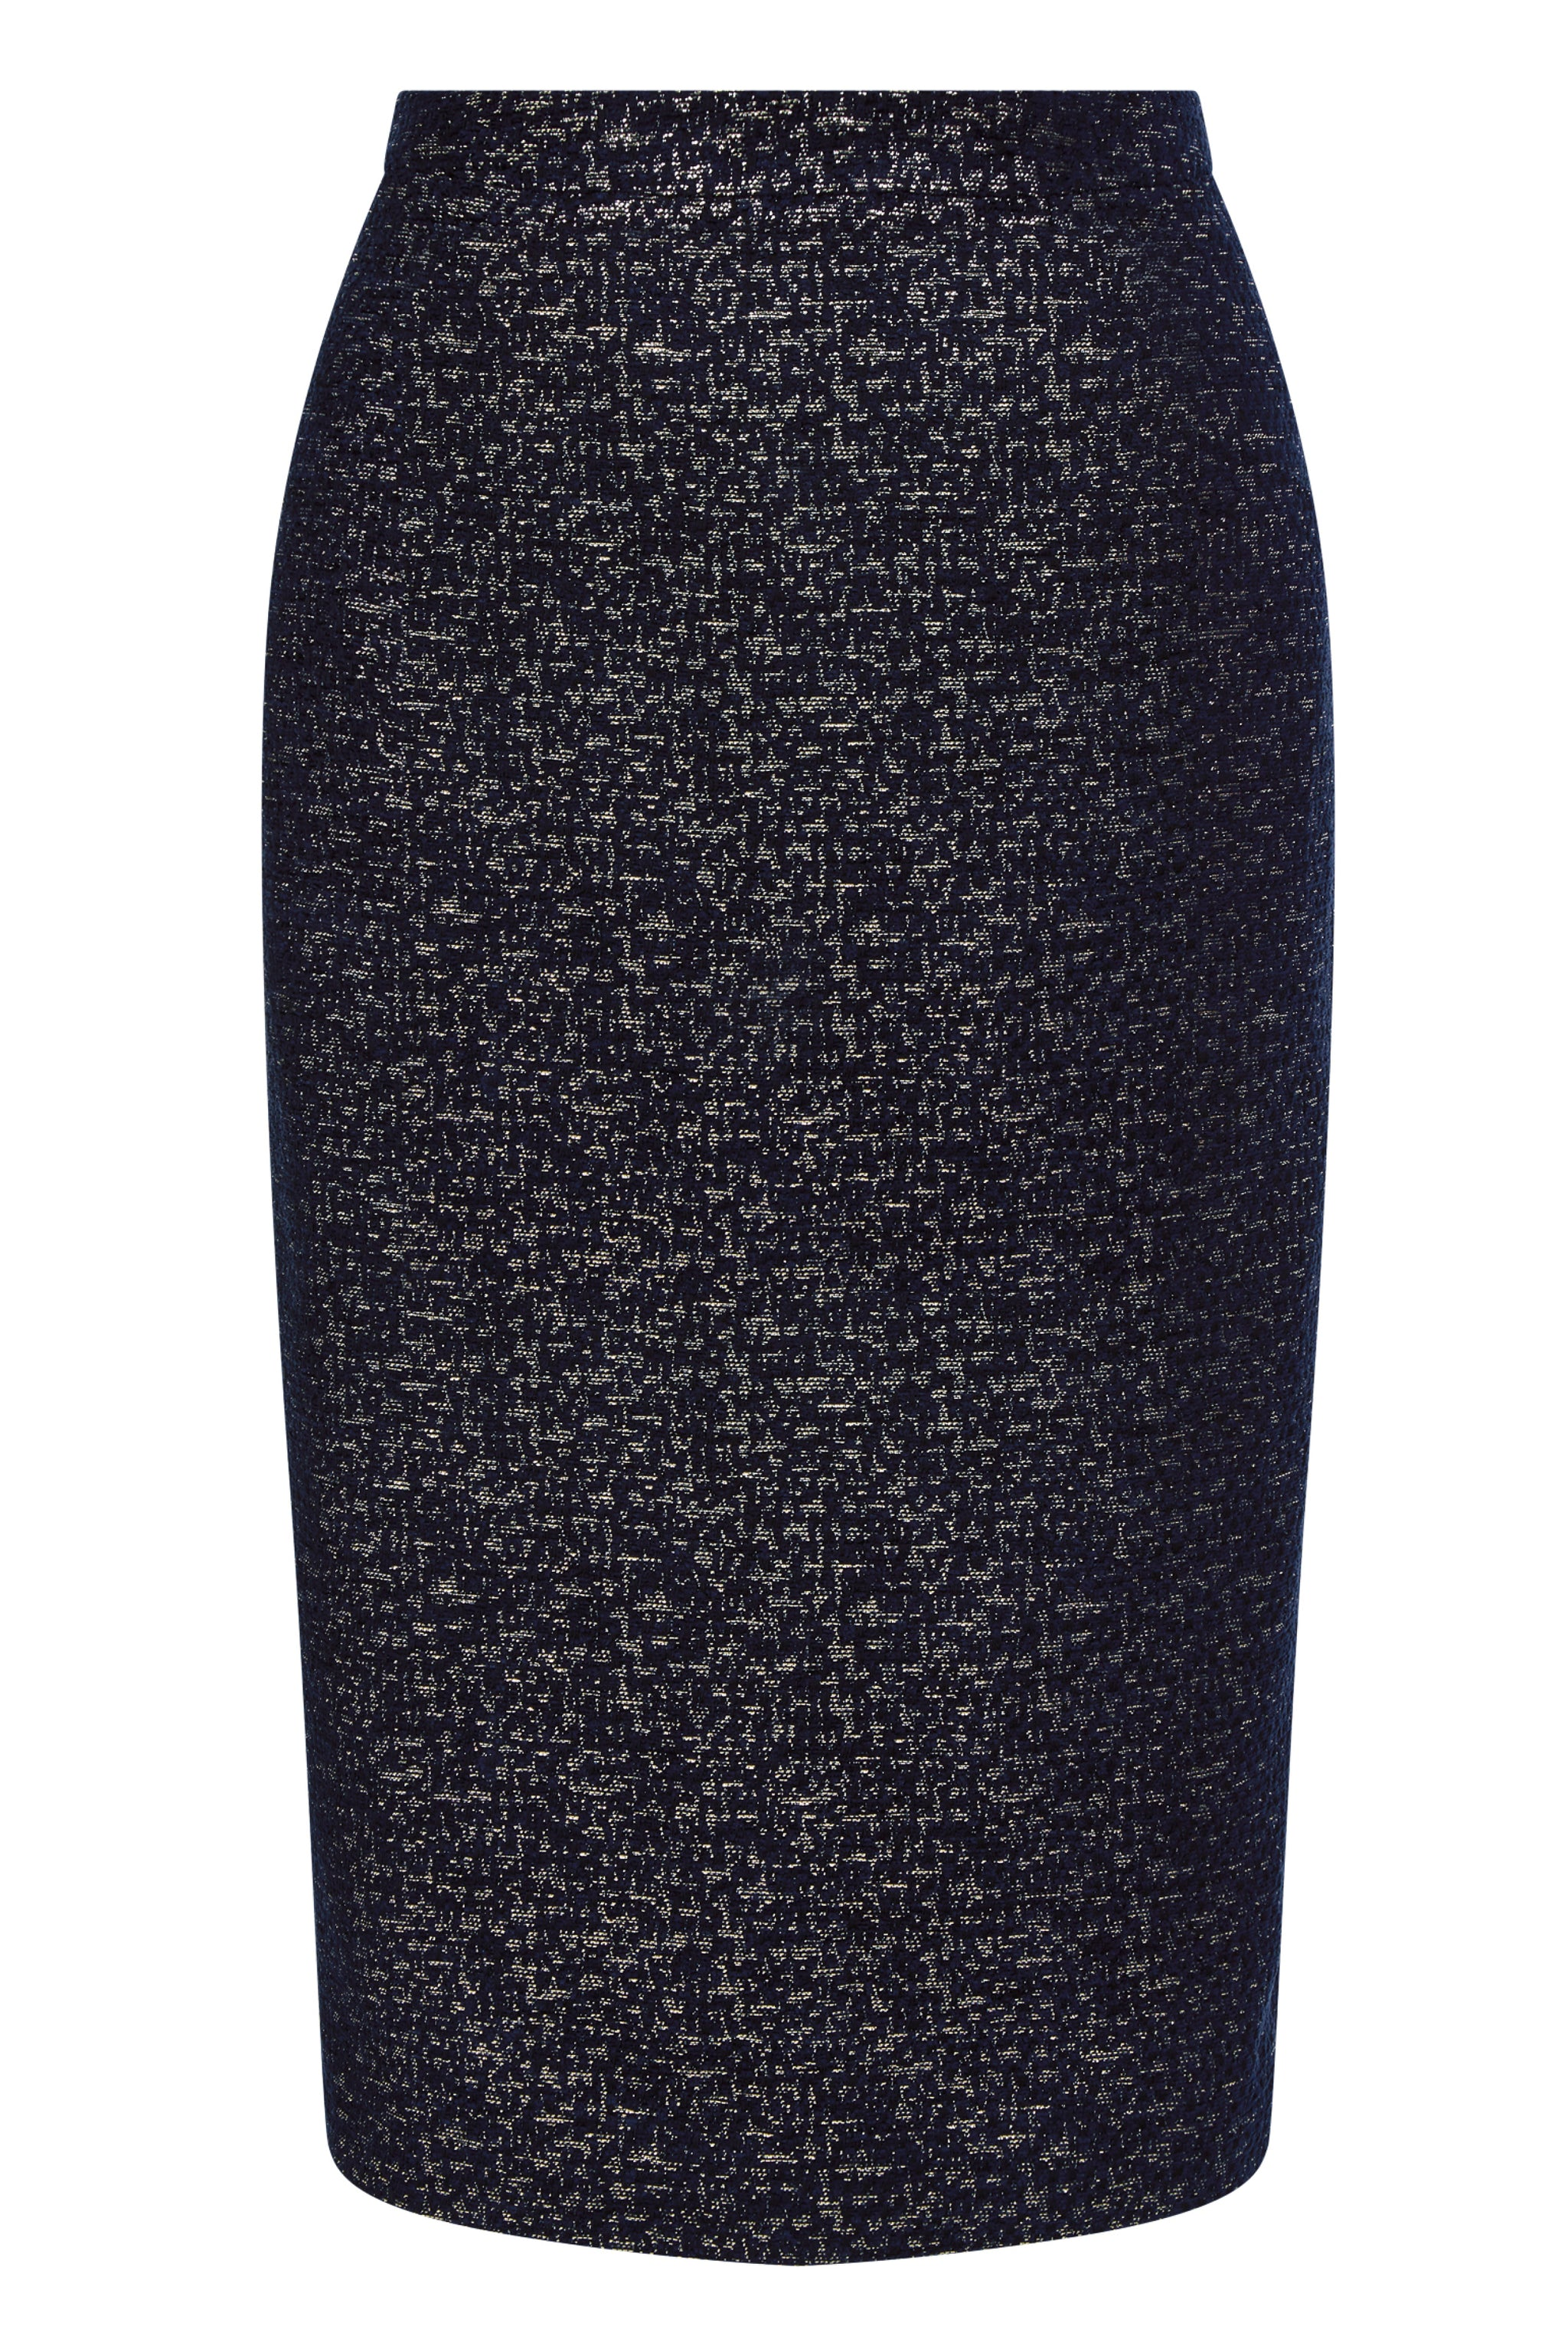 Suzy Navy & Gold Jacquard Skirt